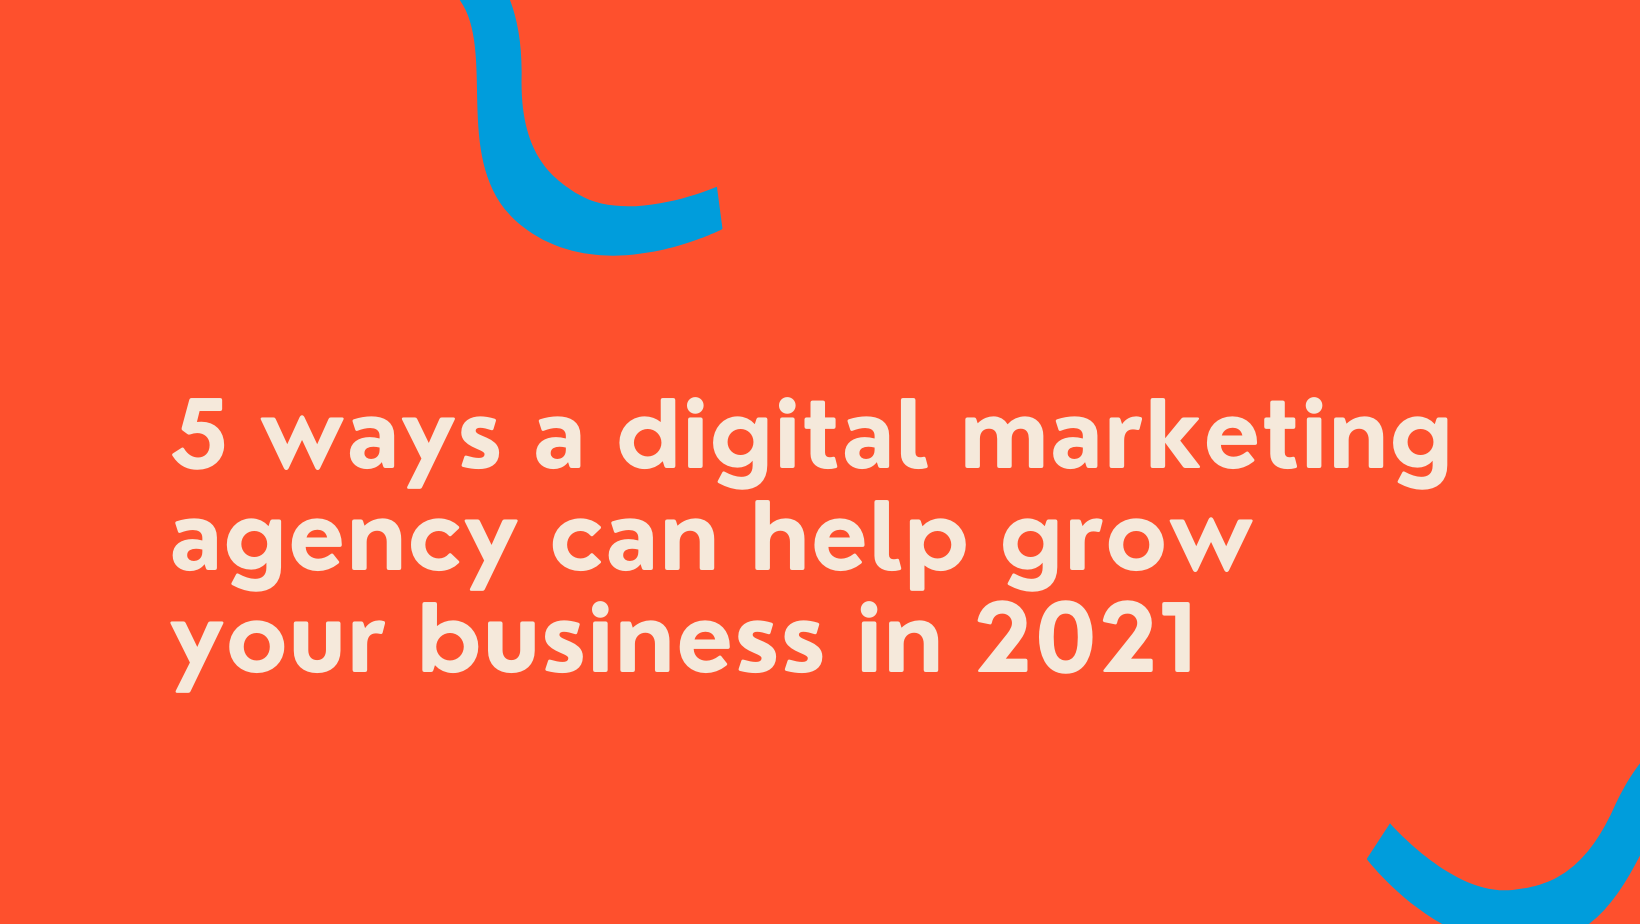 5 Ways A Digital Marketing Agency Can Help Grow Your Business in 2021